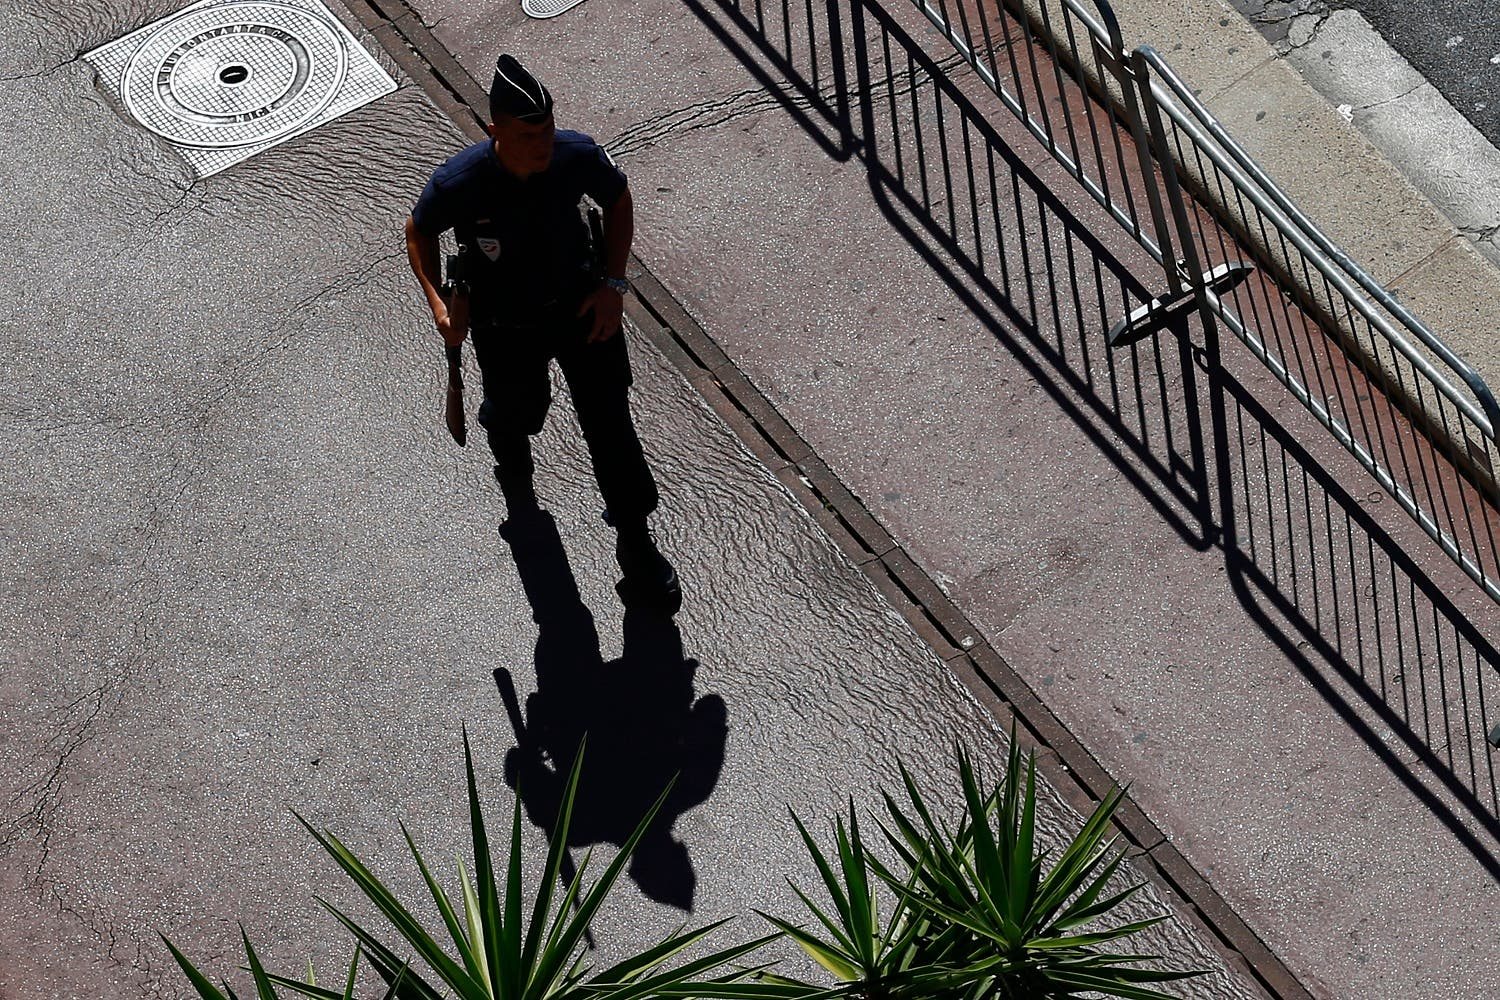 A police officer patrols at the scene where a truck mowed through revelers in Nice, southern France, Friday, July 15, 2016 (Photo: AP)